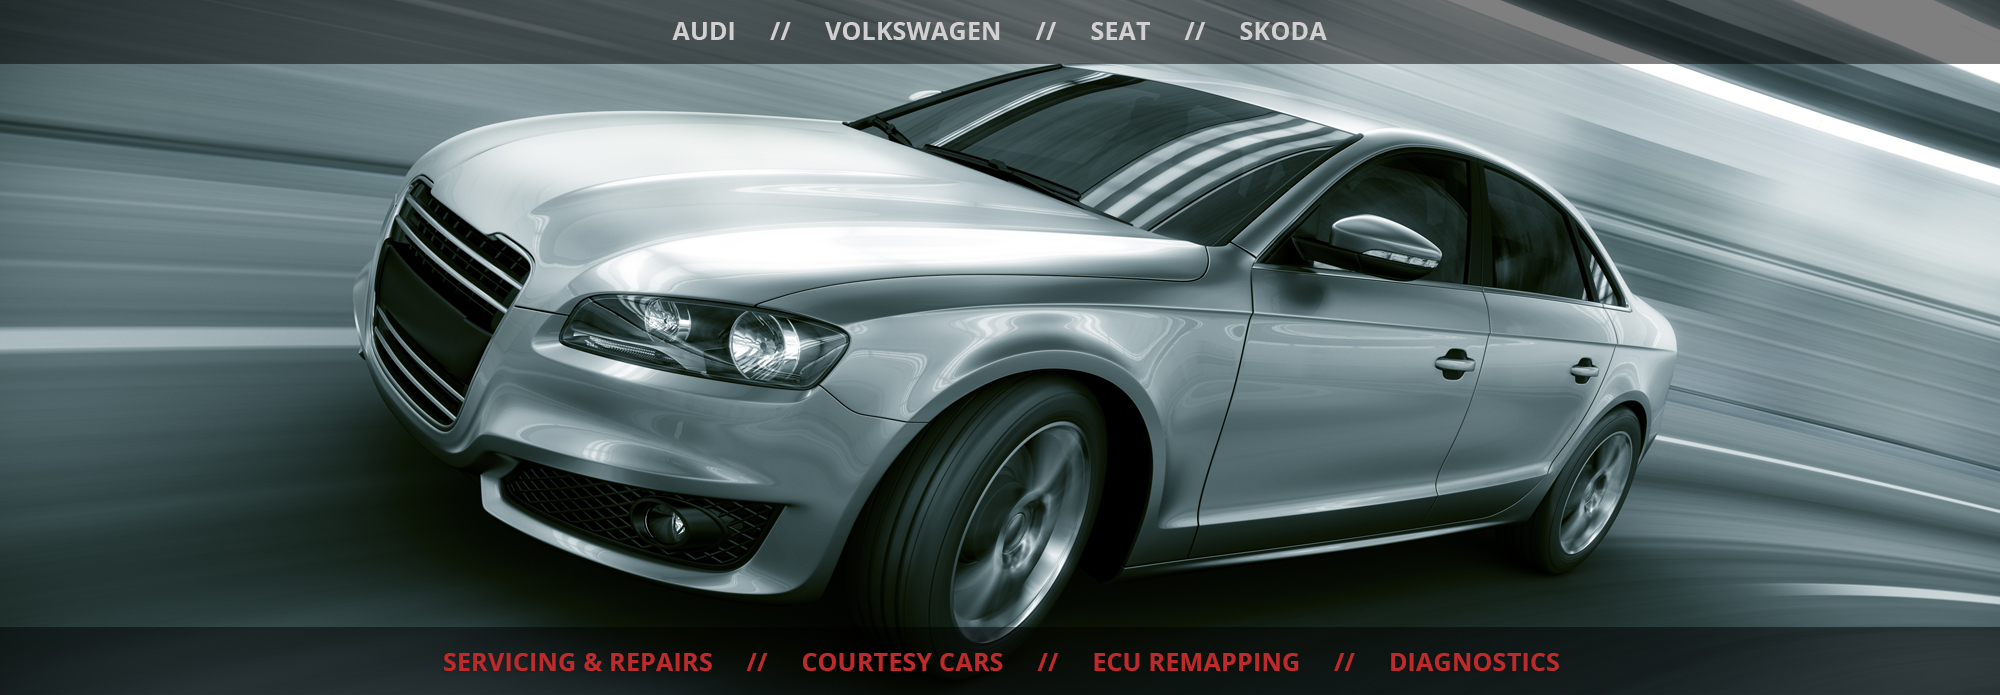 Audi VW Repair Specialist Glasgow Home